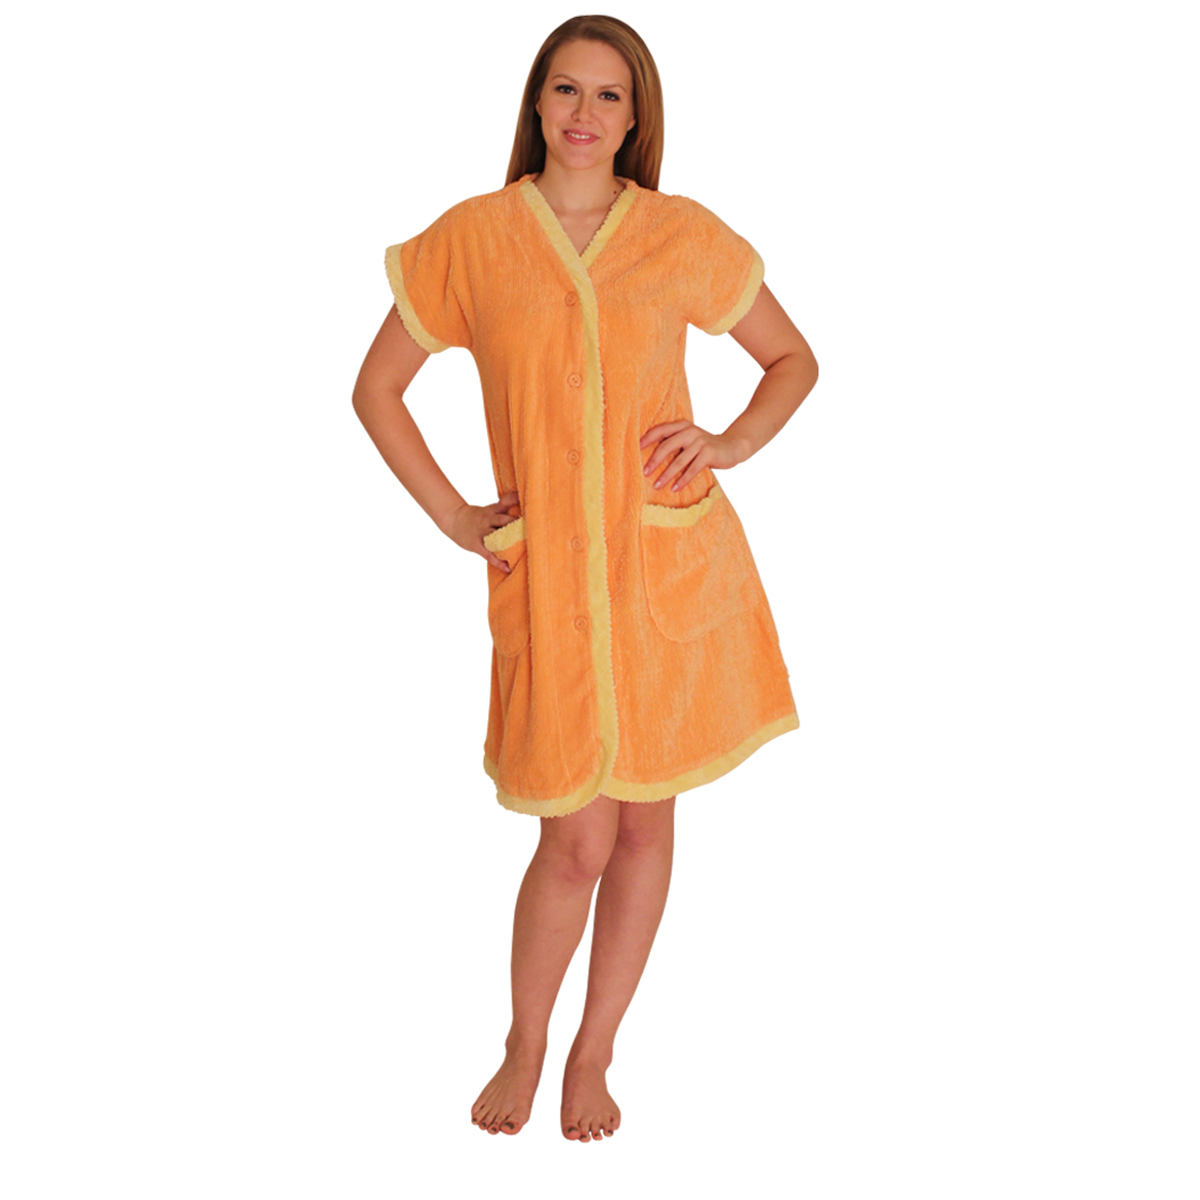 NDK New York Chenille Robe with contrast facing, cuffs and pockets-by NDK New York at Kmart.com